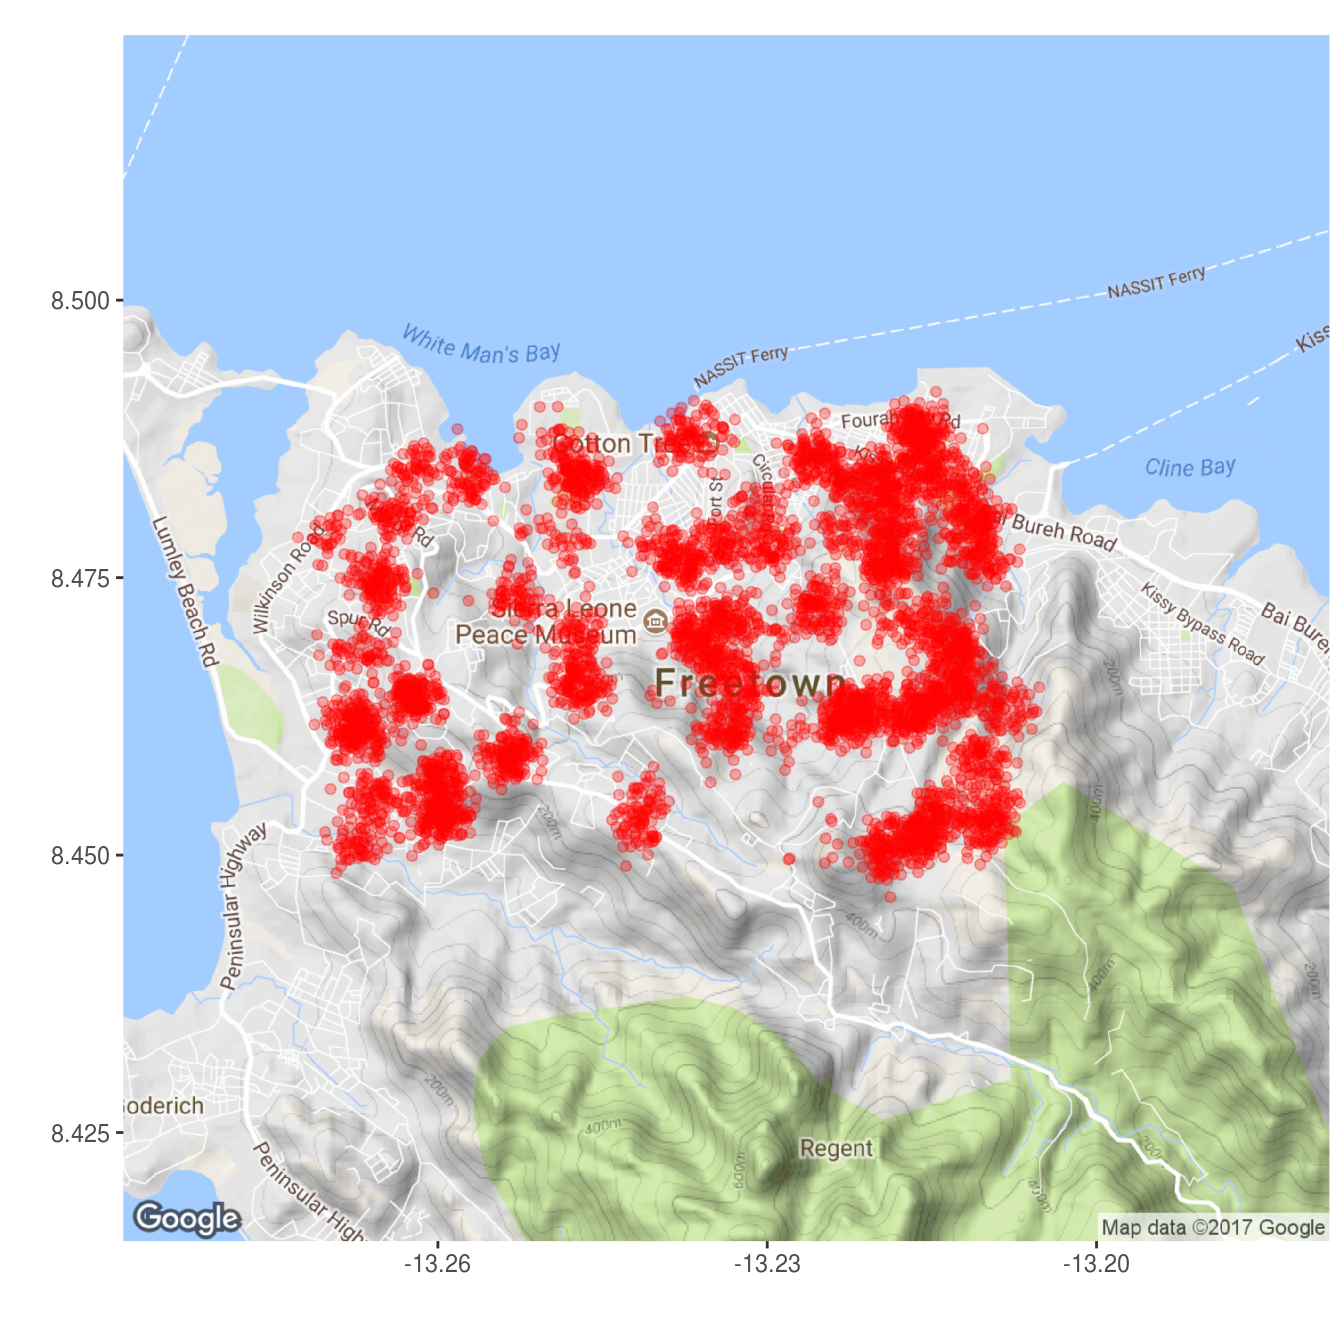 Mapping point data - RECON mapping first aid